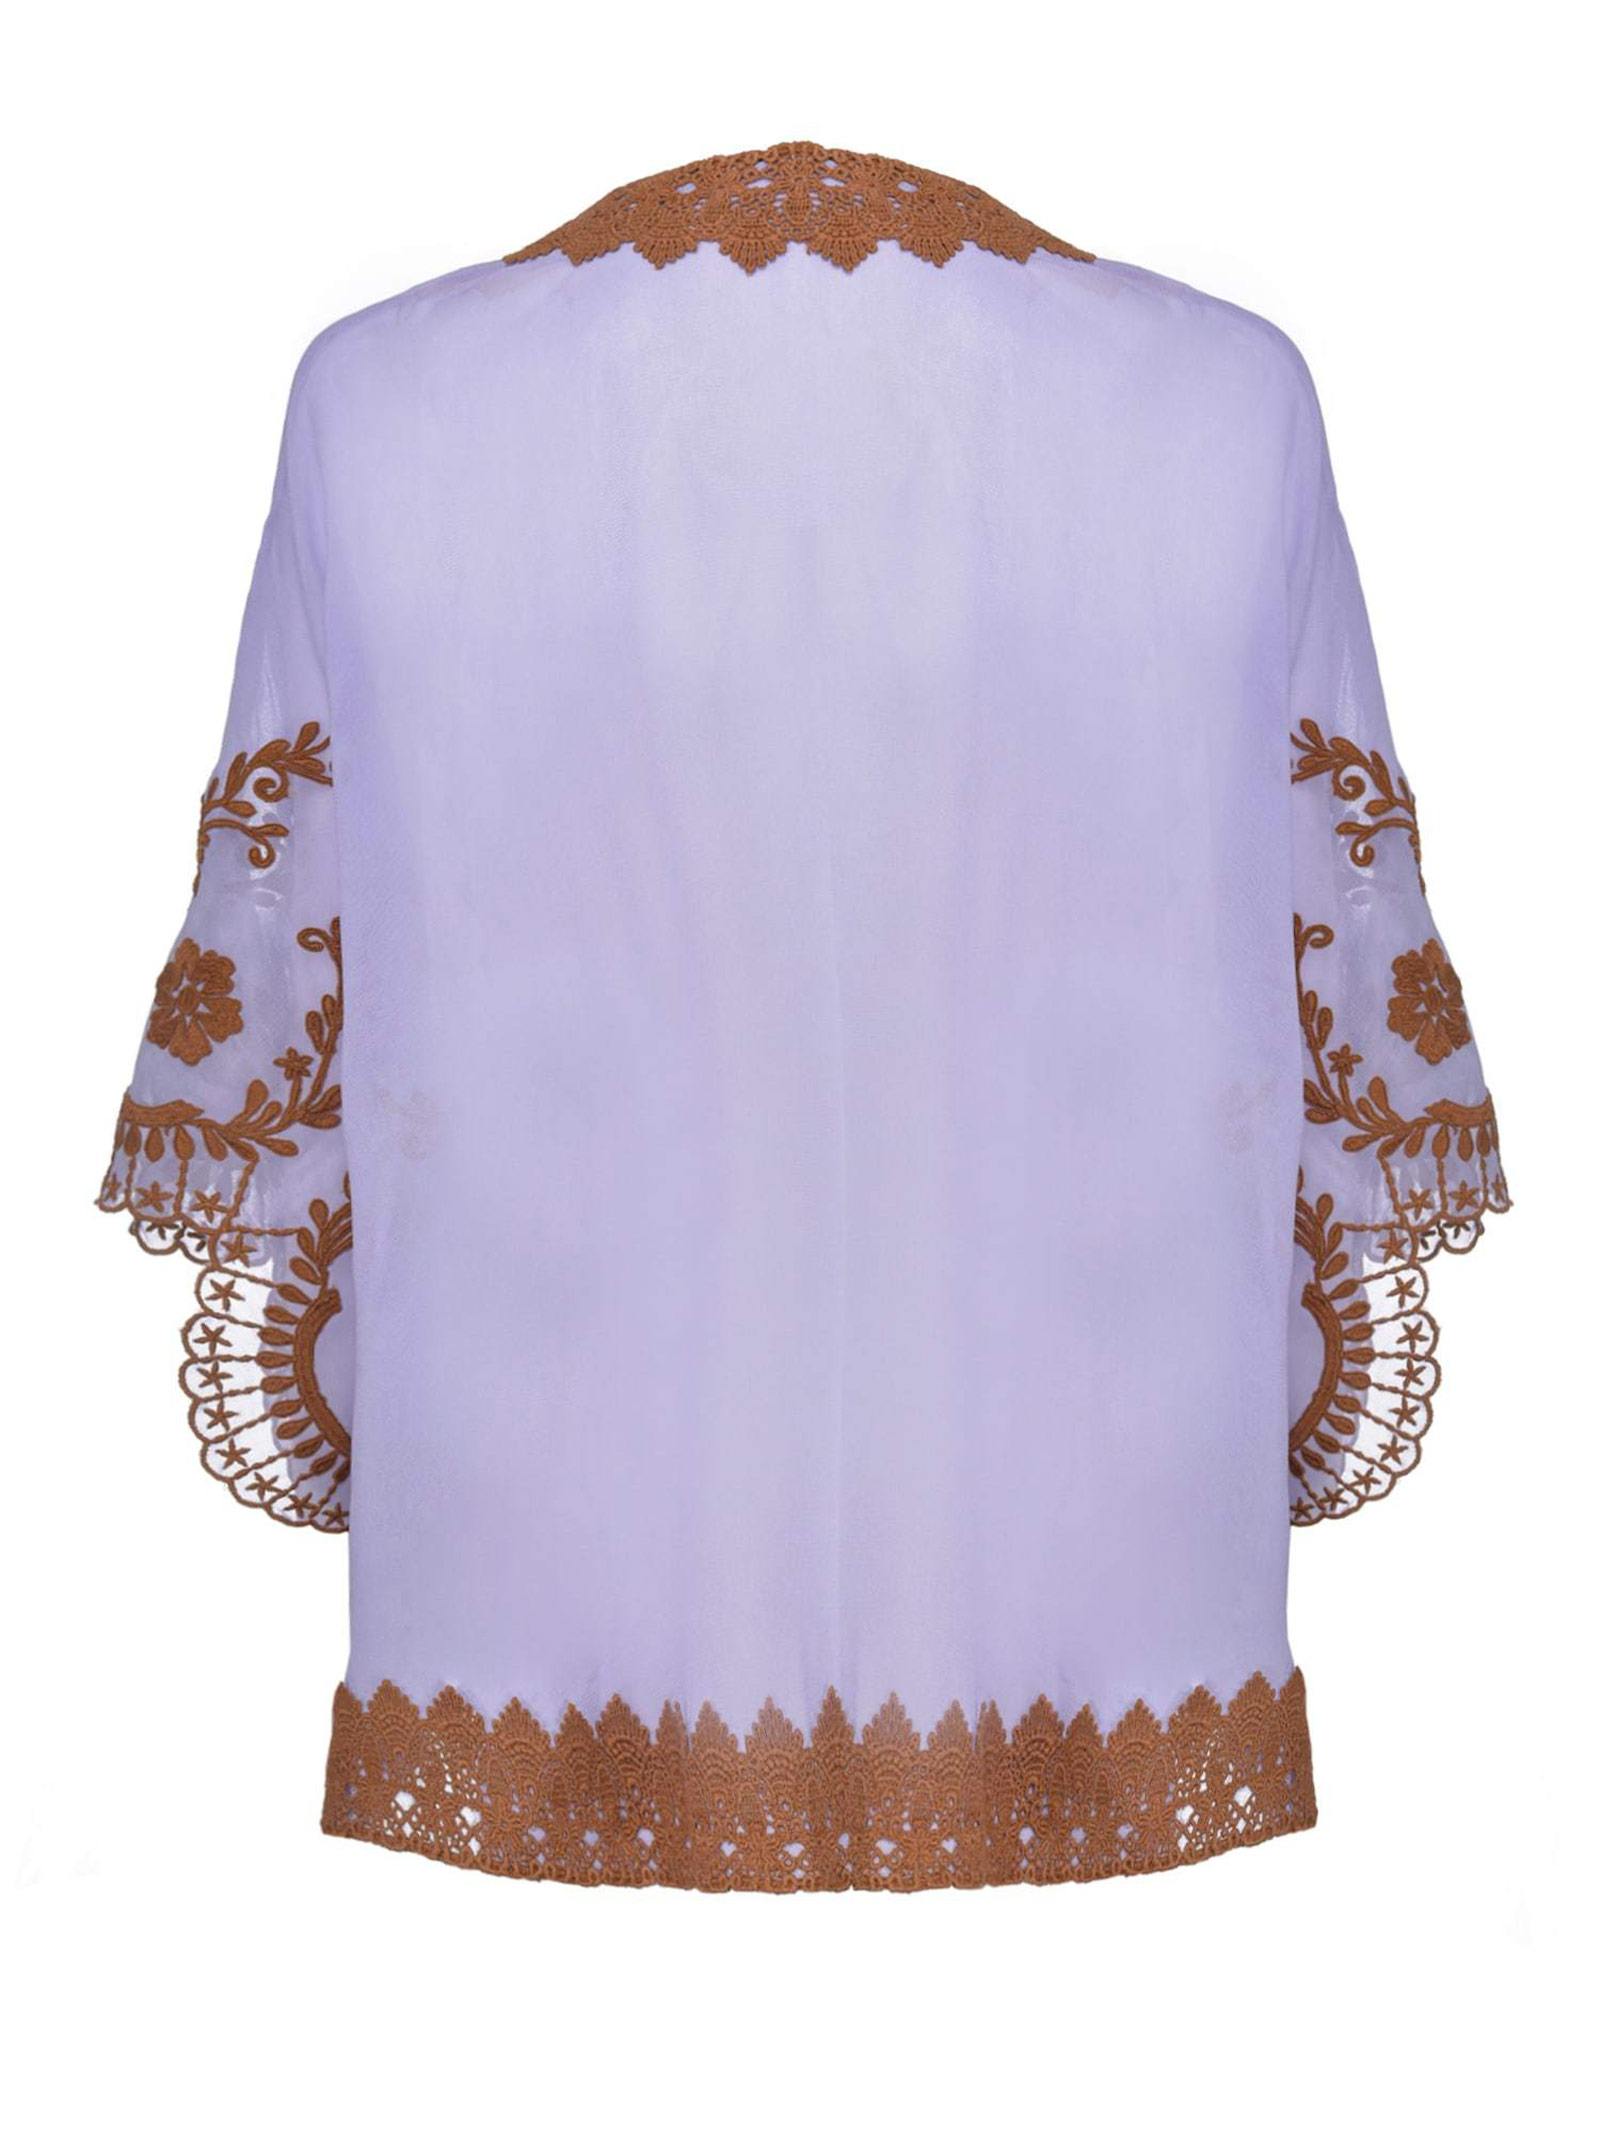 CAFTANO IN GEORGETTE RICAMATA PINKO | Poncho | 1G15NH-Y6WCCZ2